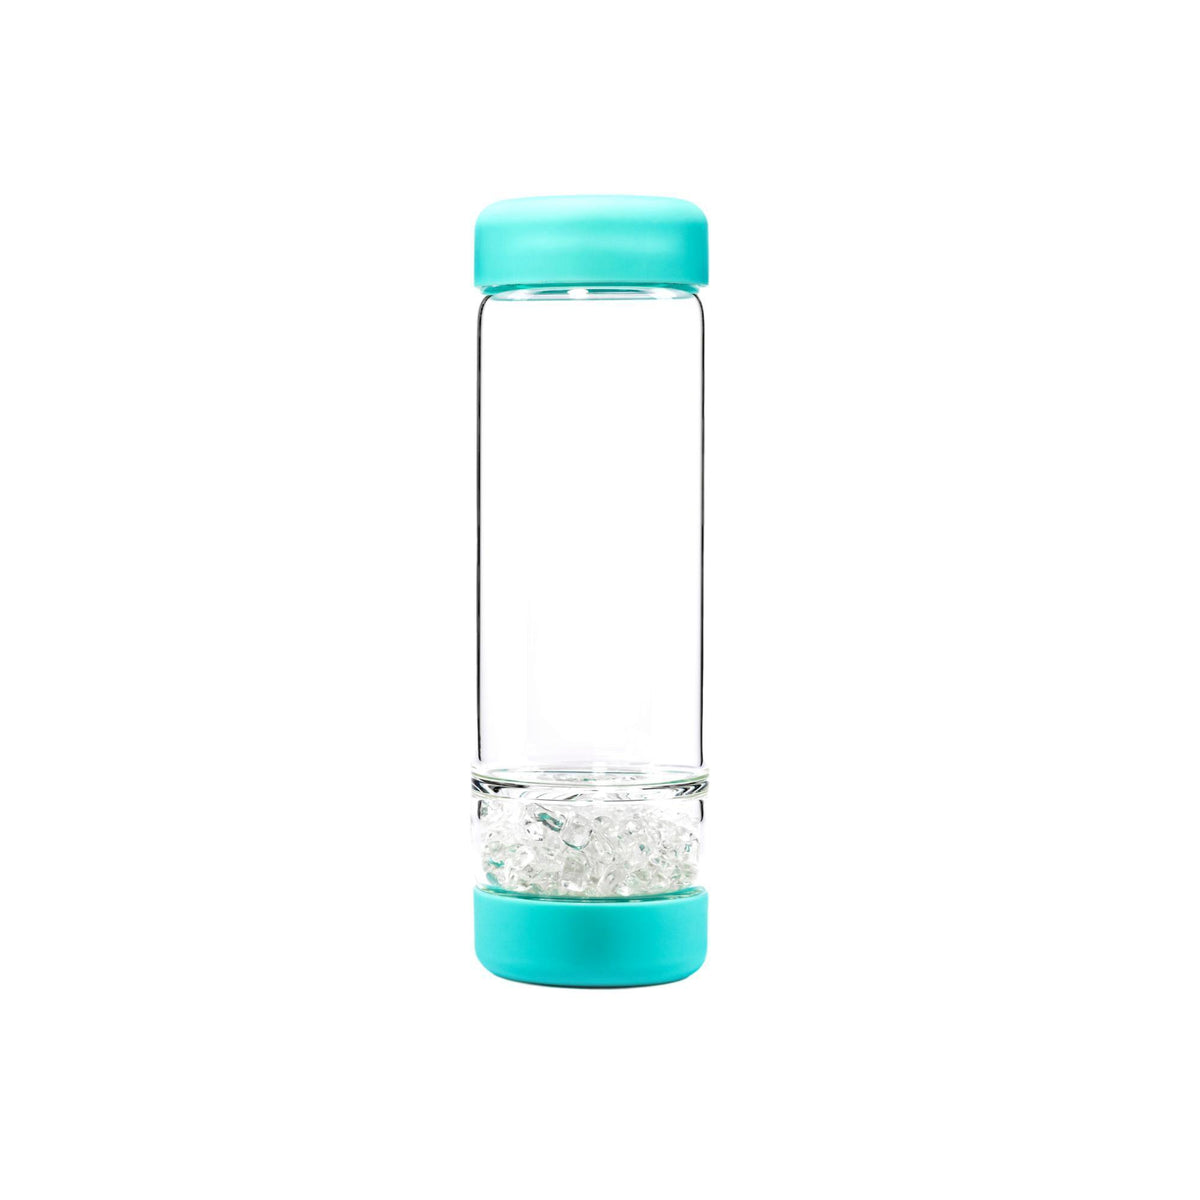 VitaJuwel INU! Crystal Bottle, Ocean Blue